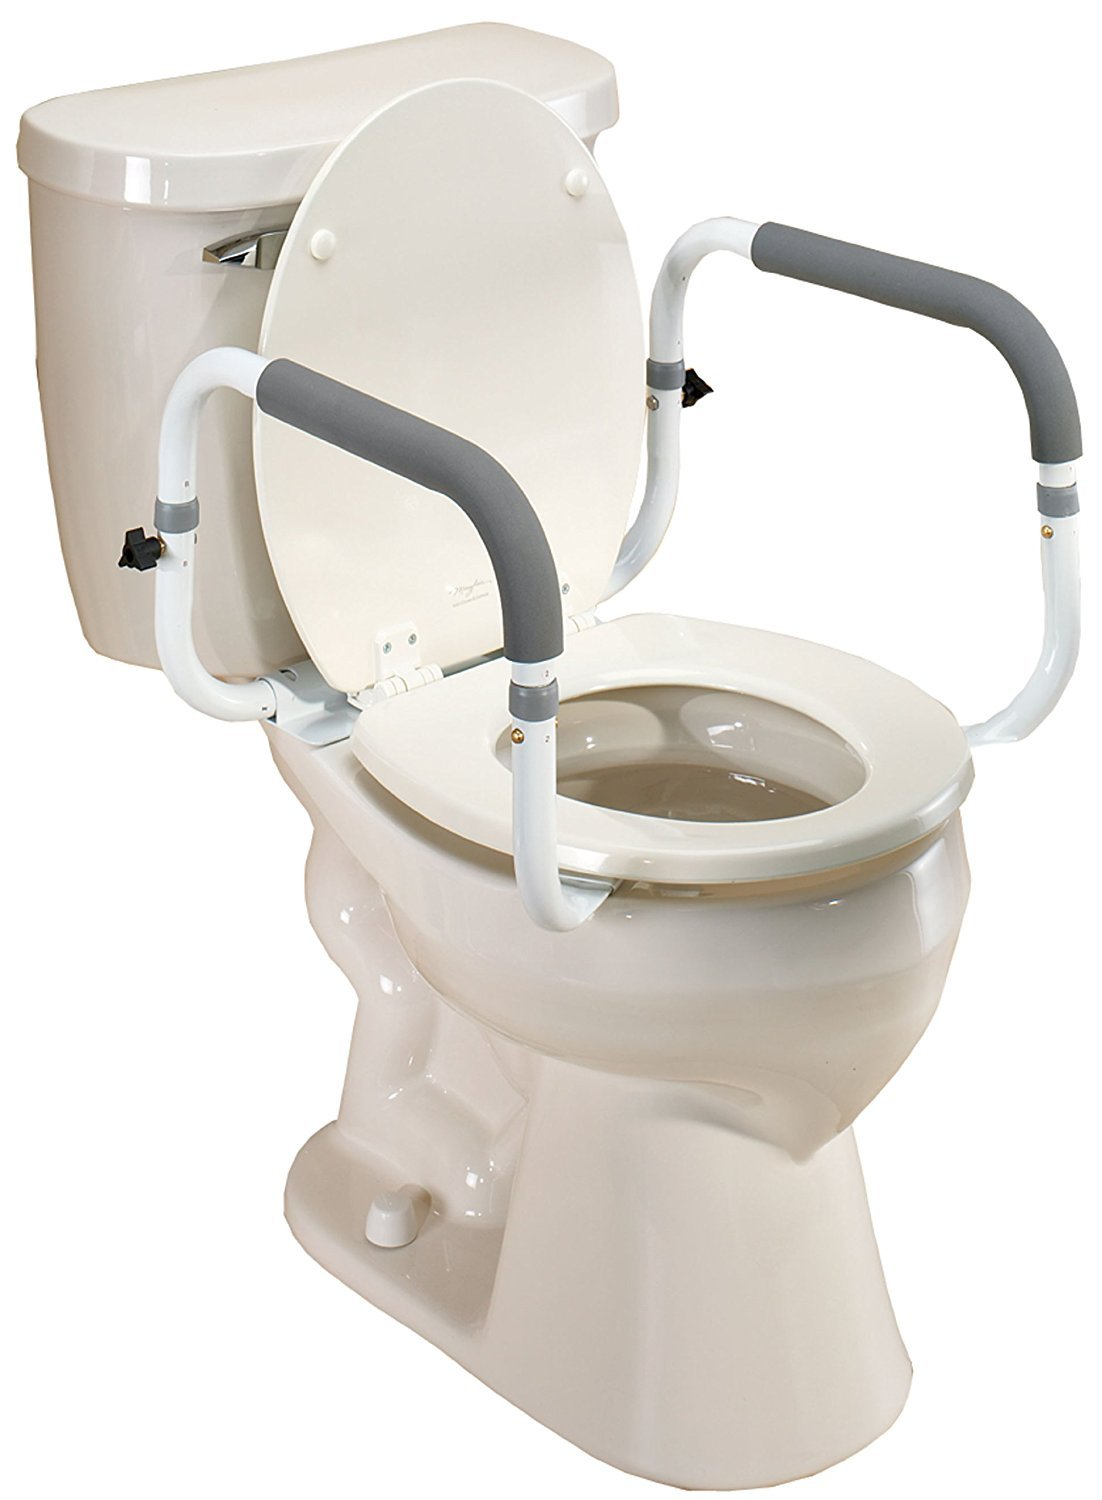 5 Best Toilet Safety Rails Of 2017 The Smartest Buyer